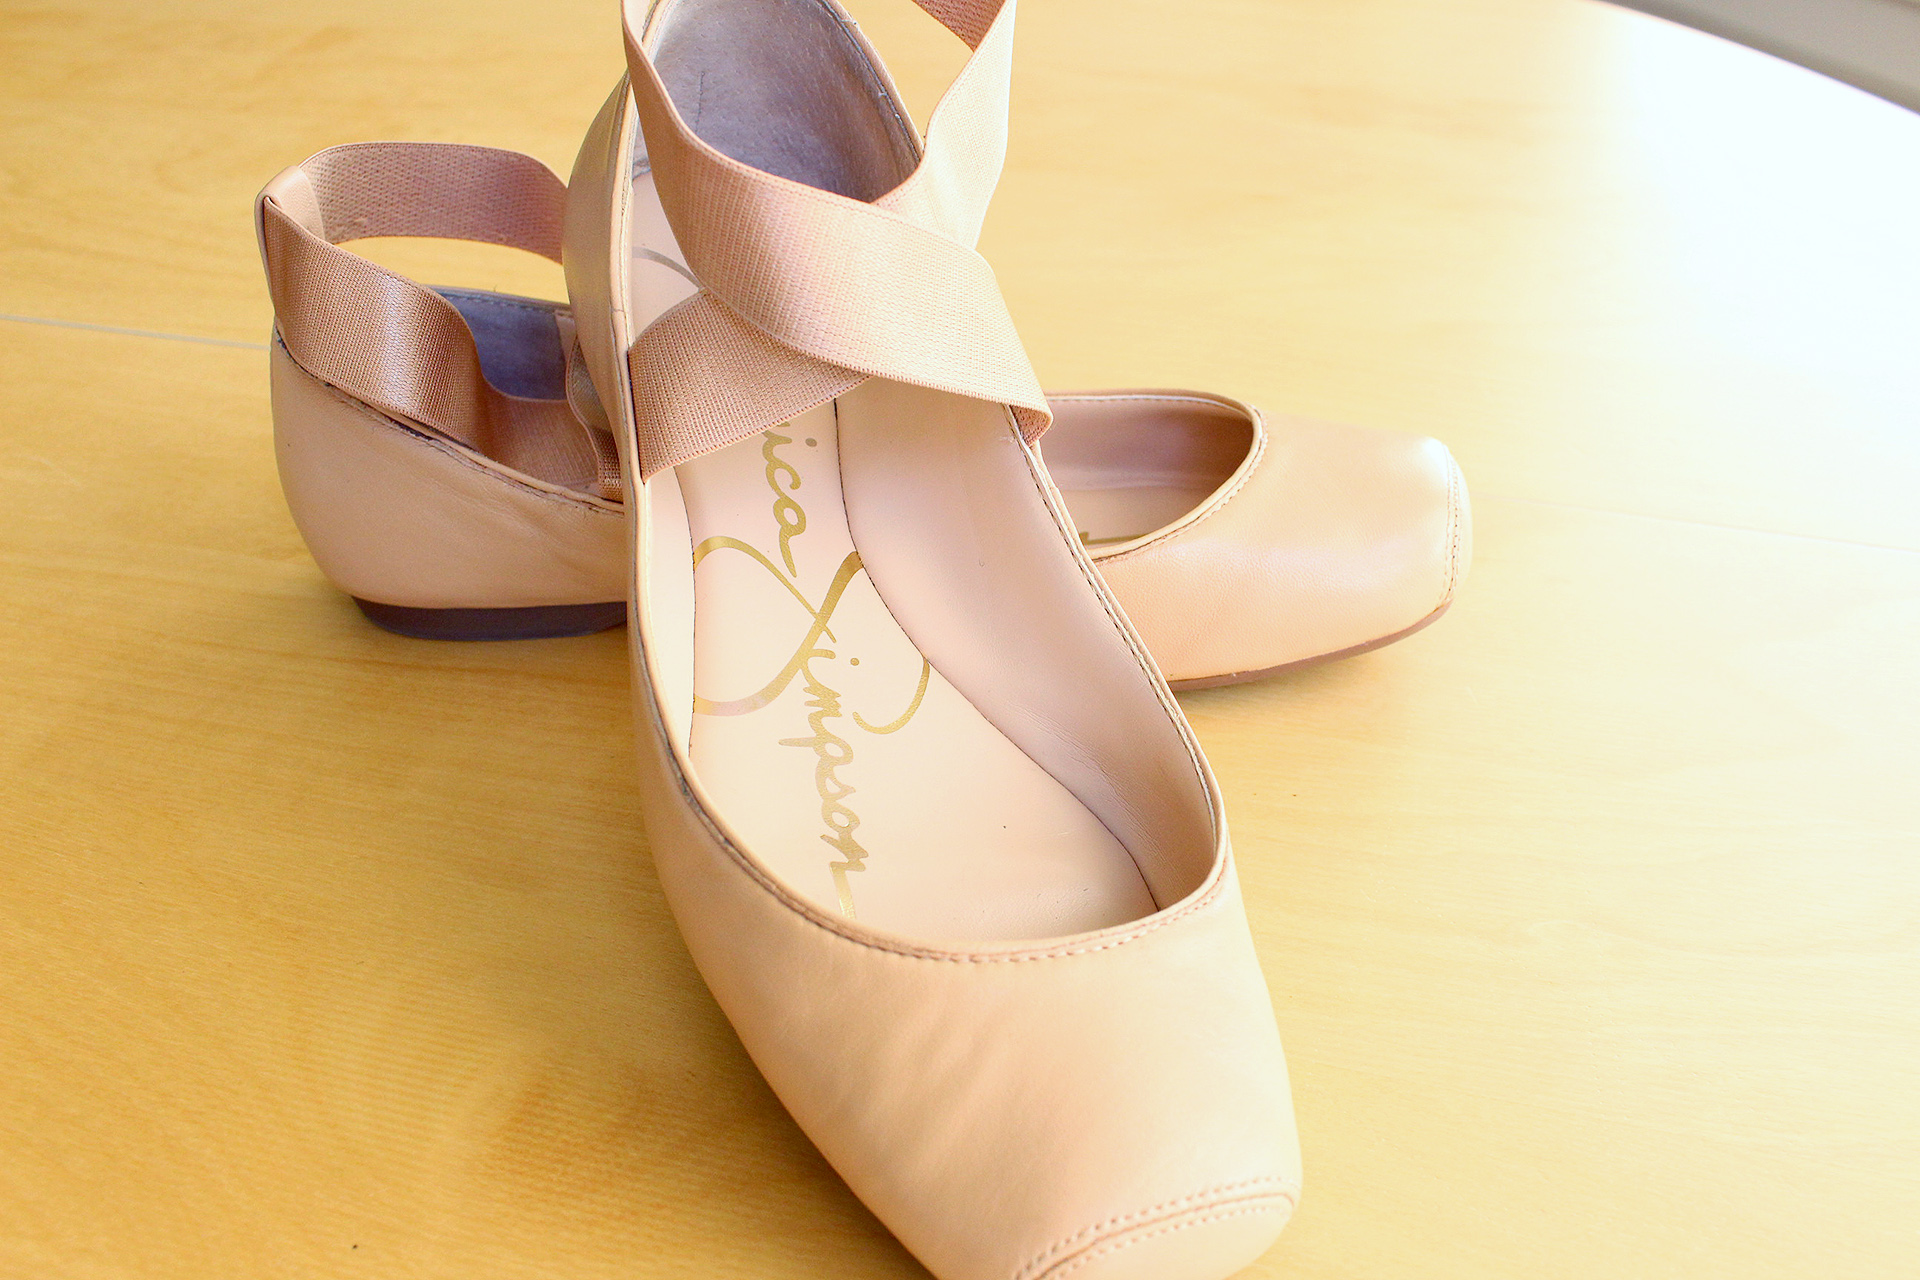 Ballet slippers from Jessica Simpson, Macy's, August 2016 Sewing Pinup Haul   @vintageontap